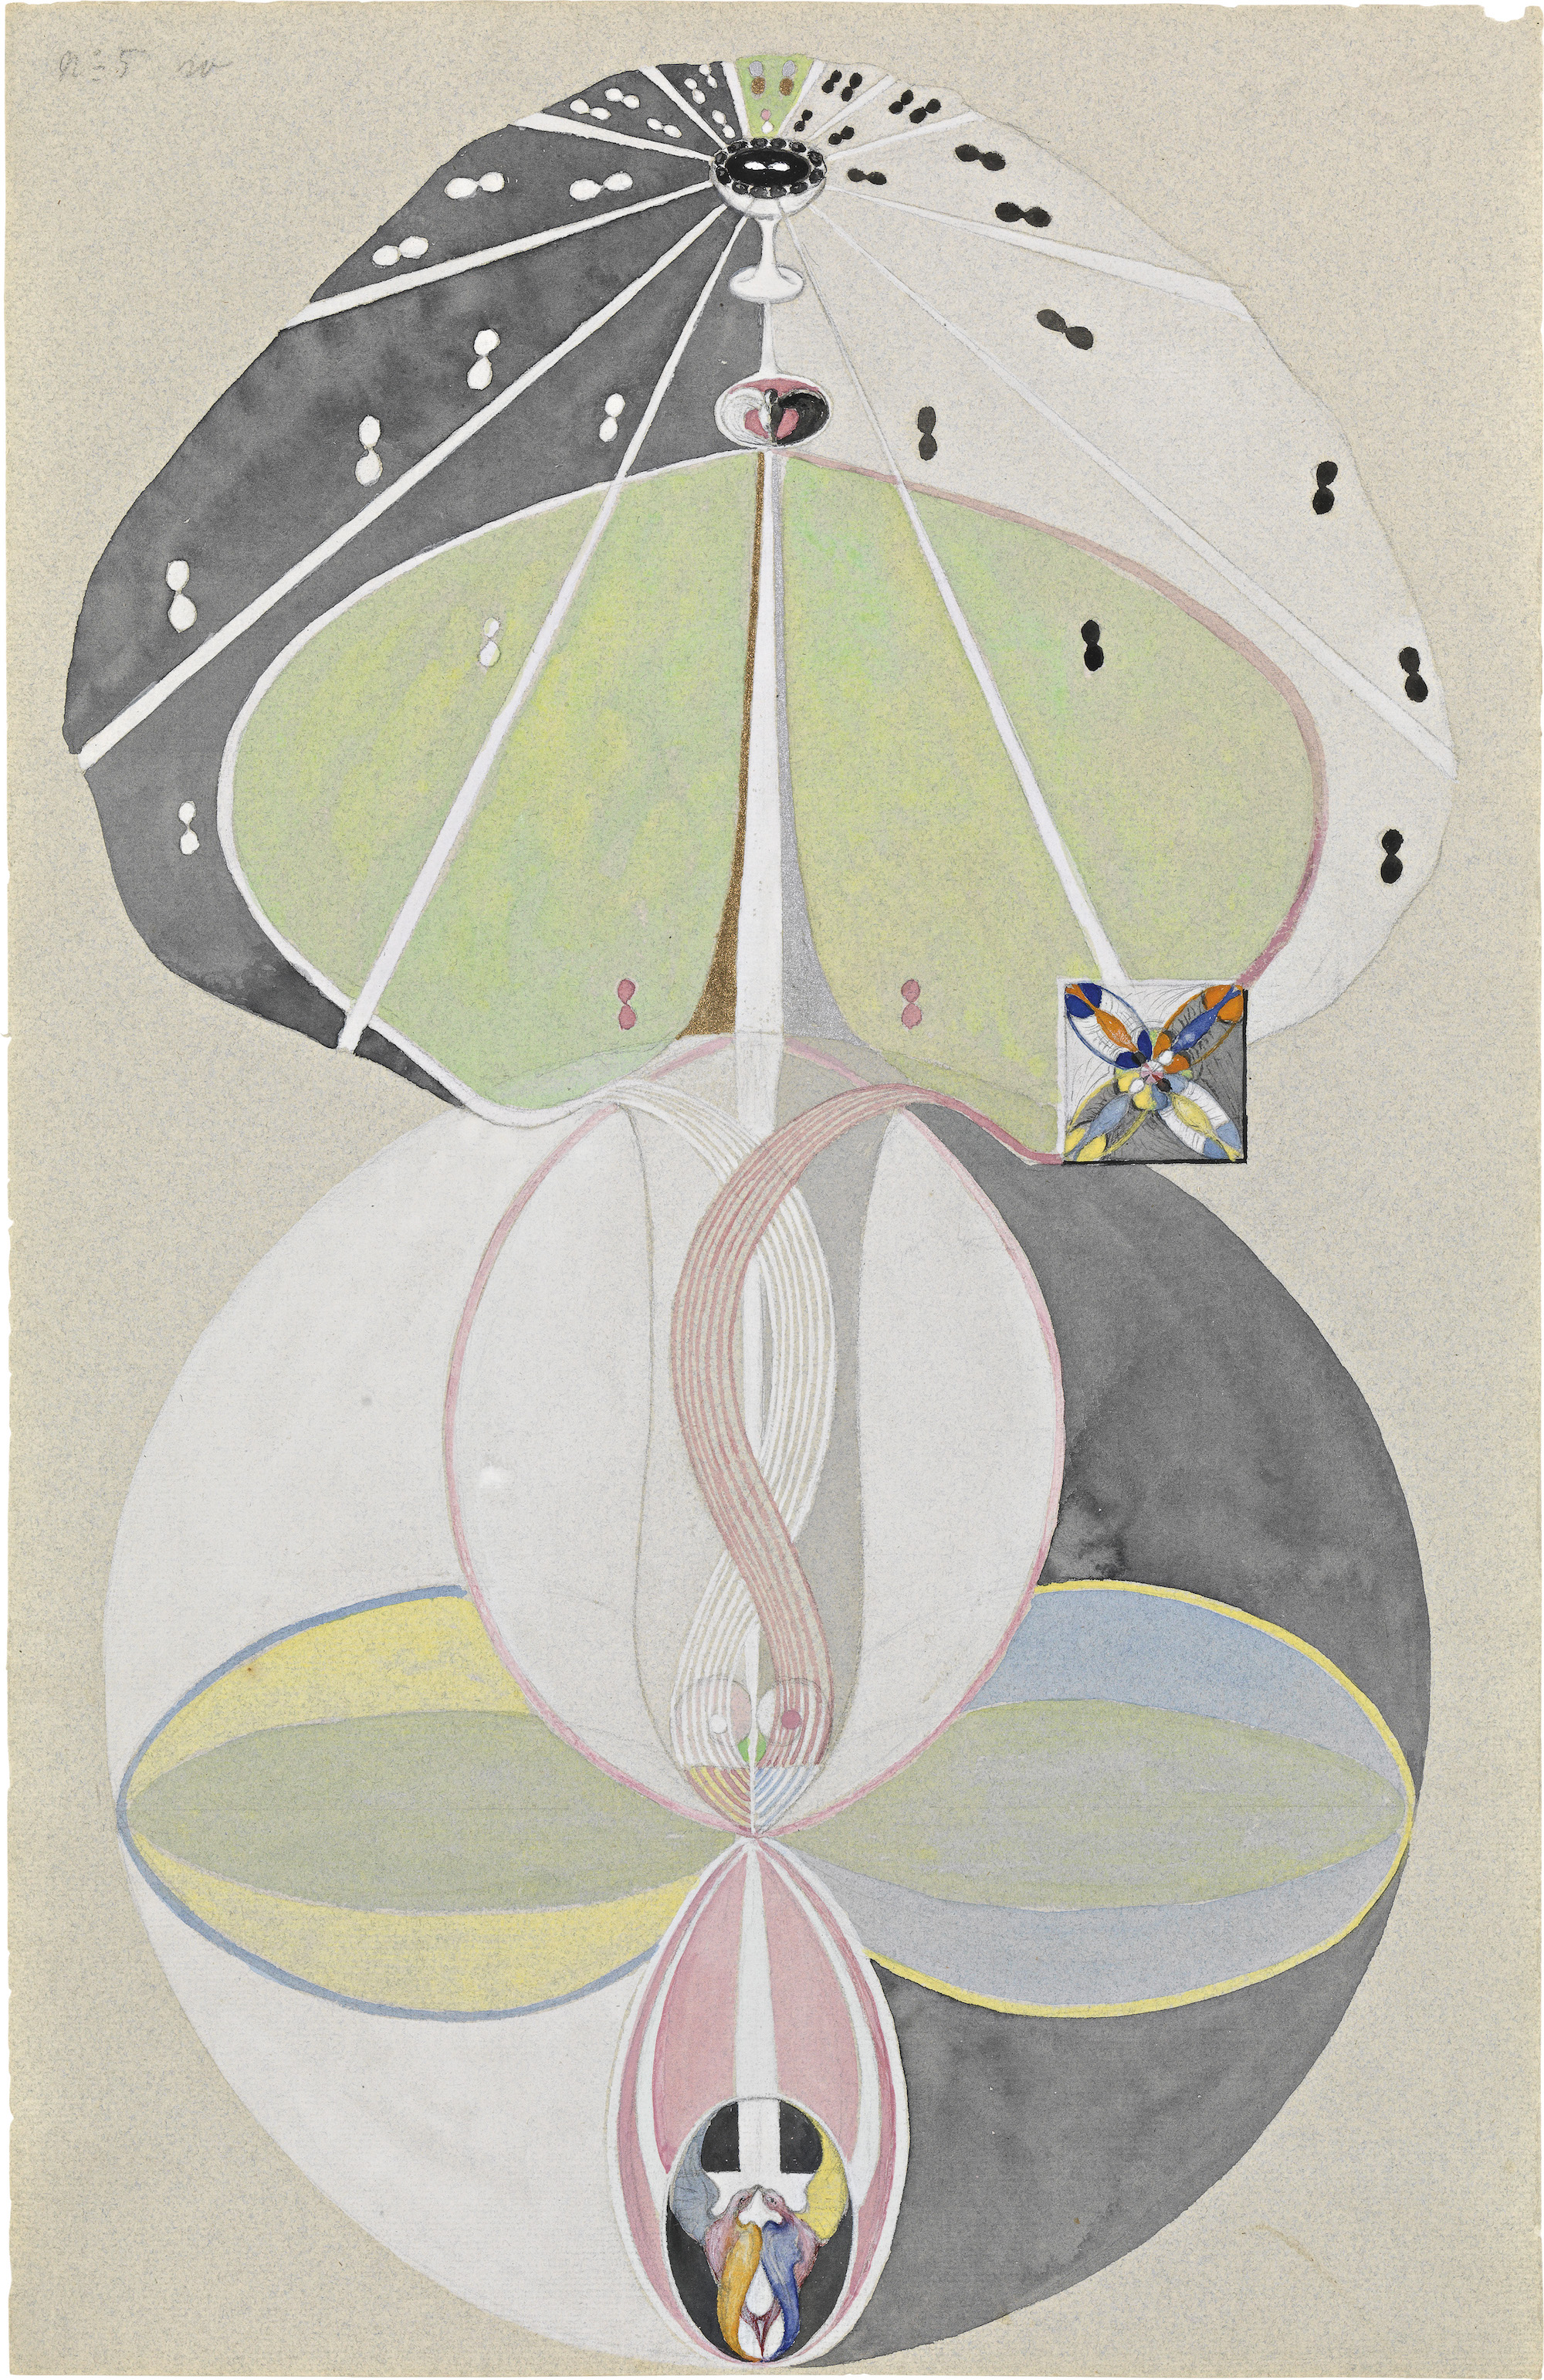 Hilma af Klint Tree of Knowledge, No. 5 (Kunskapens träd, nr 5), 1915. Courtesy The Hilma af Klint Foundation, Stockholm